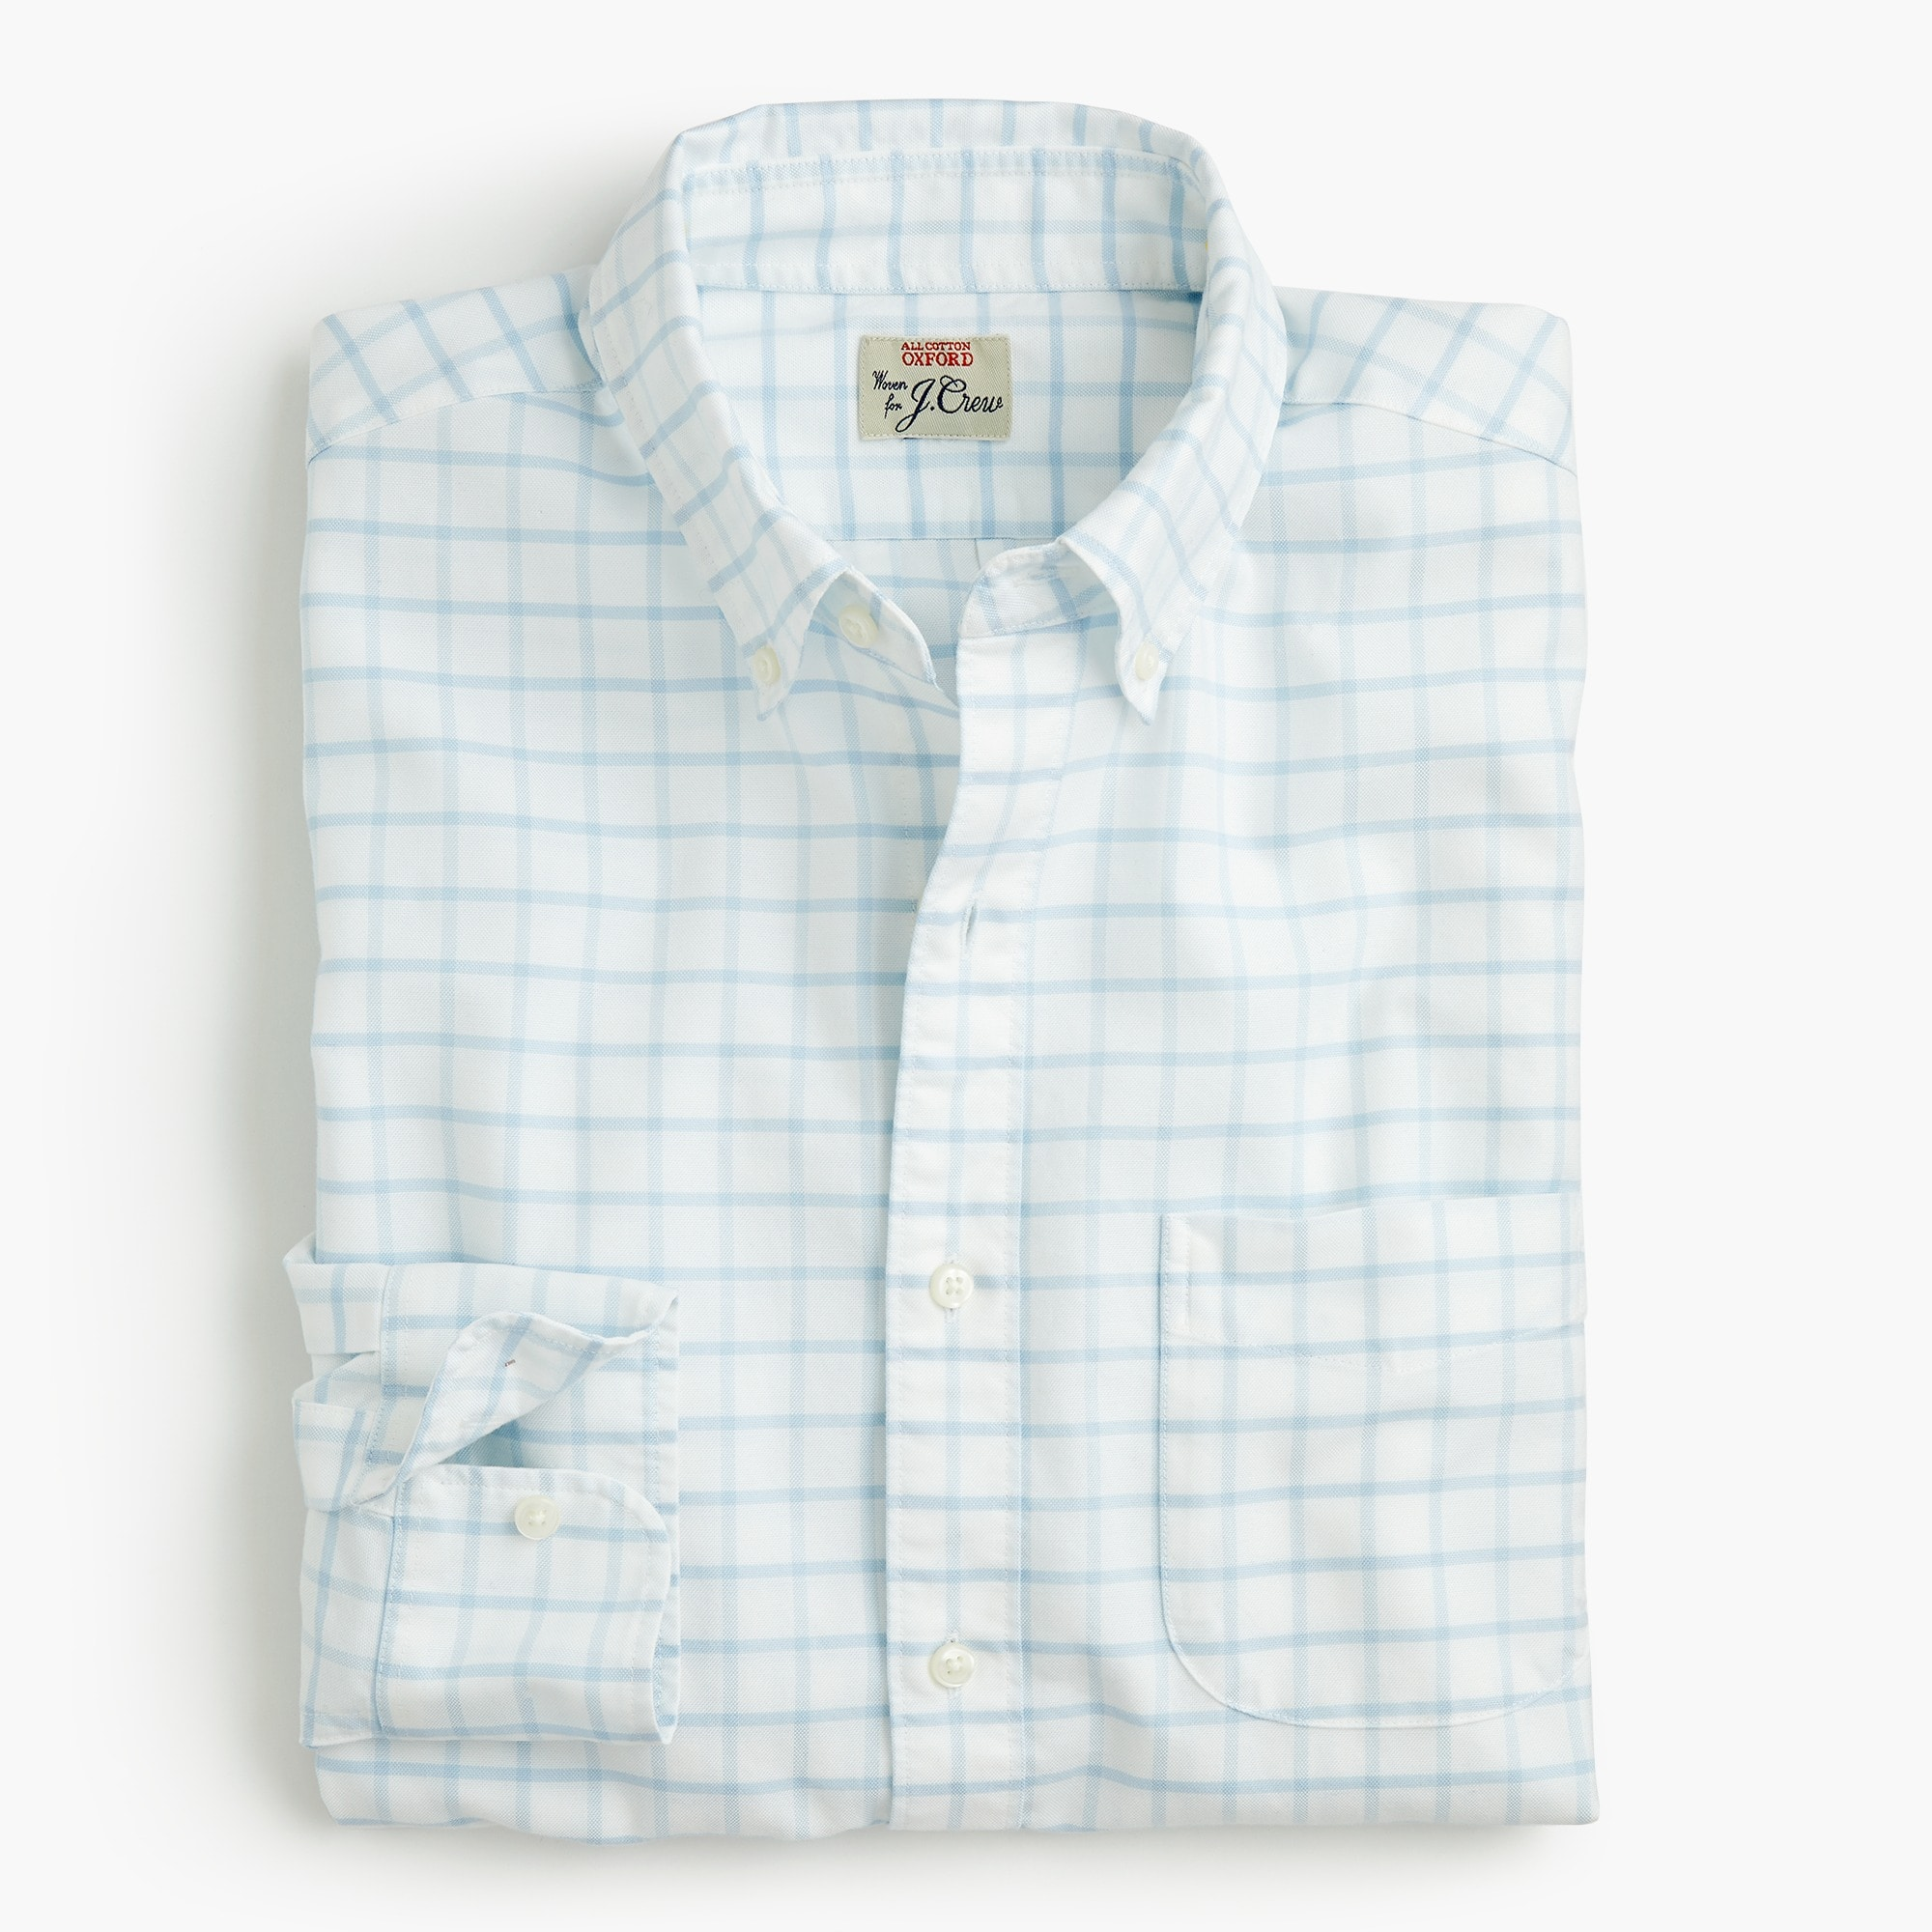 mens Slim American Pima cotton checked oxford shirt with mechanical stretch